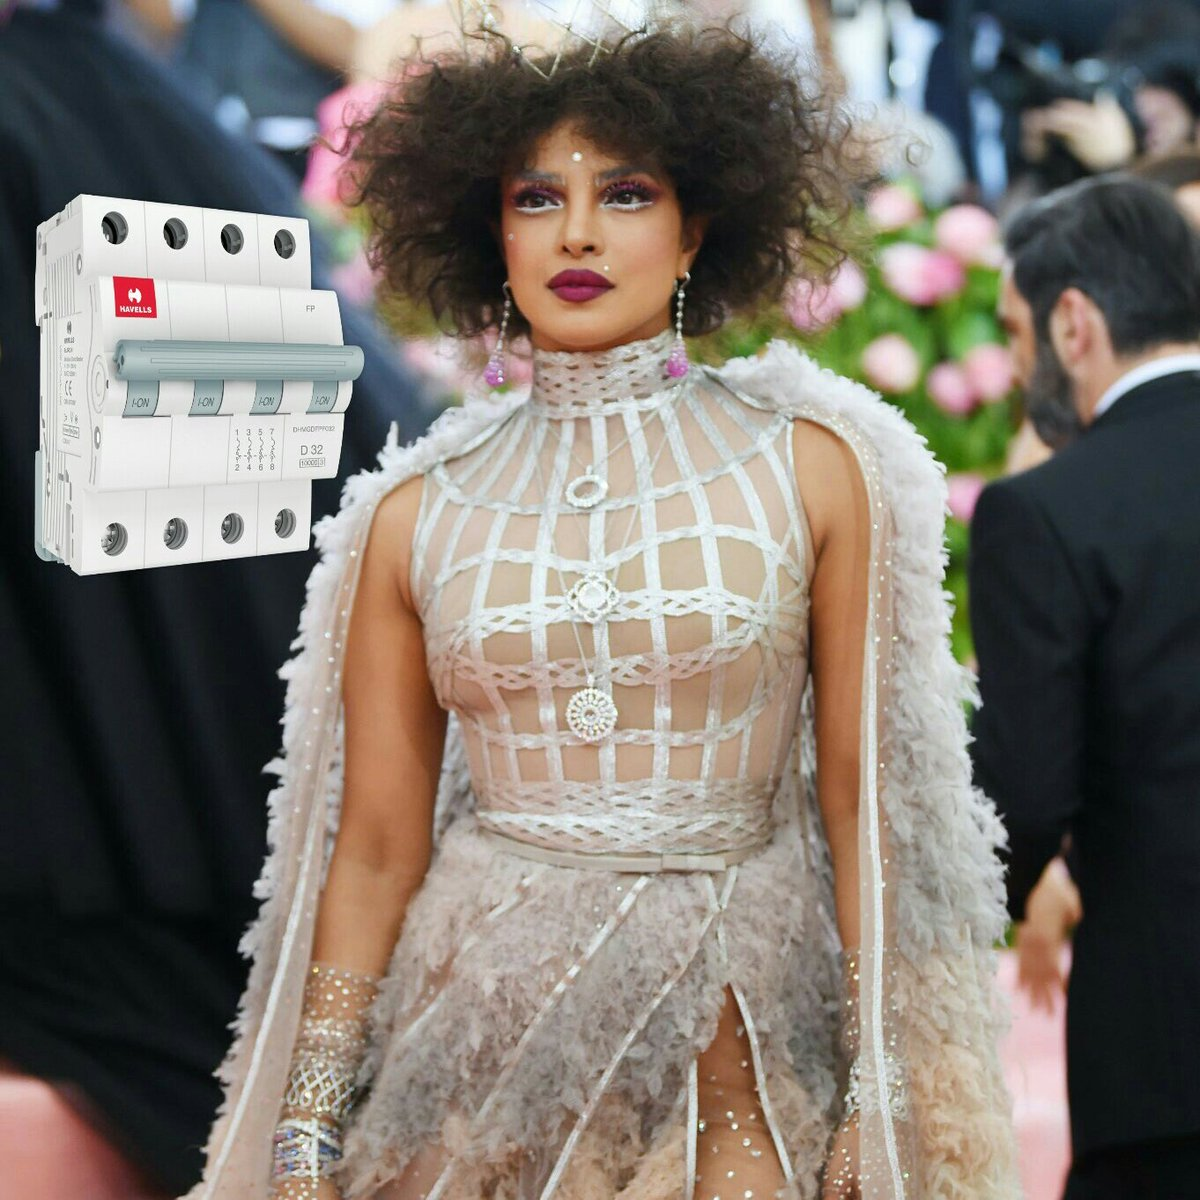 #MetGala - Priyanka Chopra SHAMES INDIA in the most celebrated Red carpet - See these Funny Posts and Laugh Out Loud!